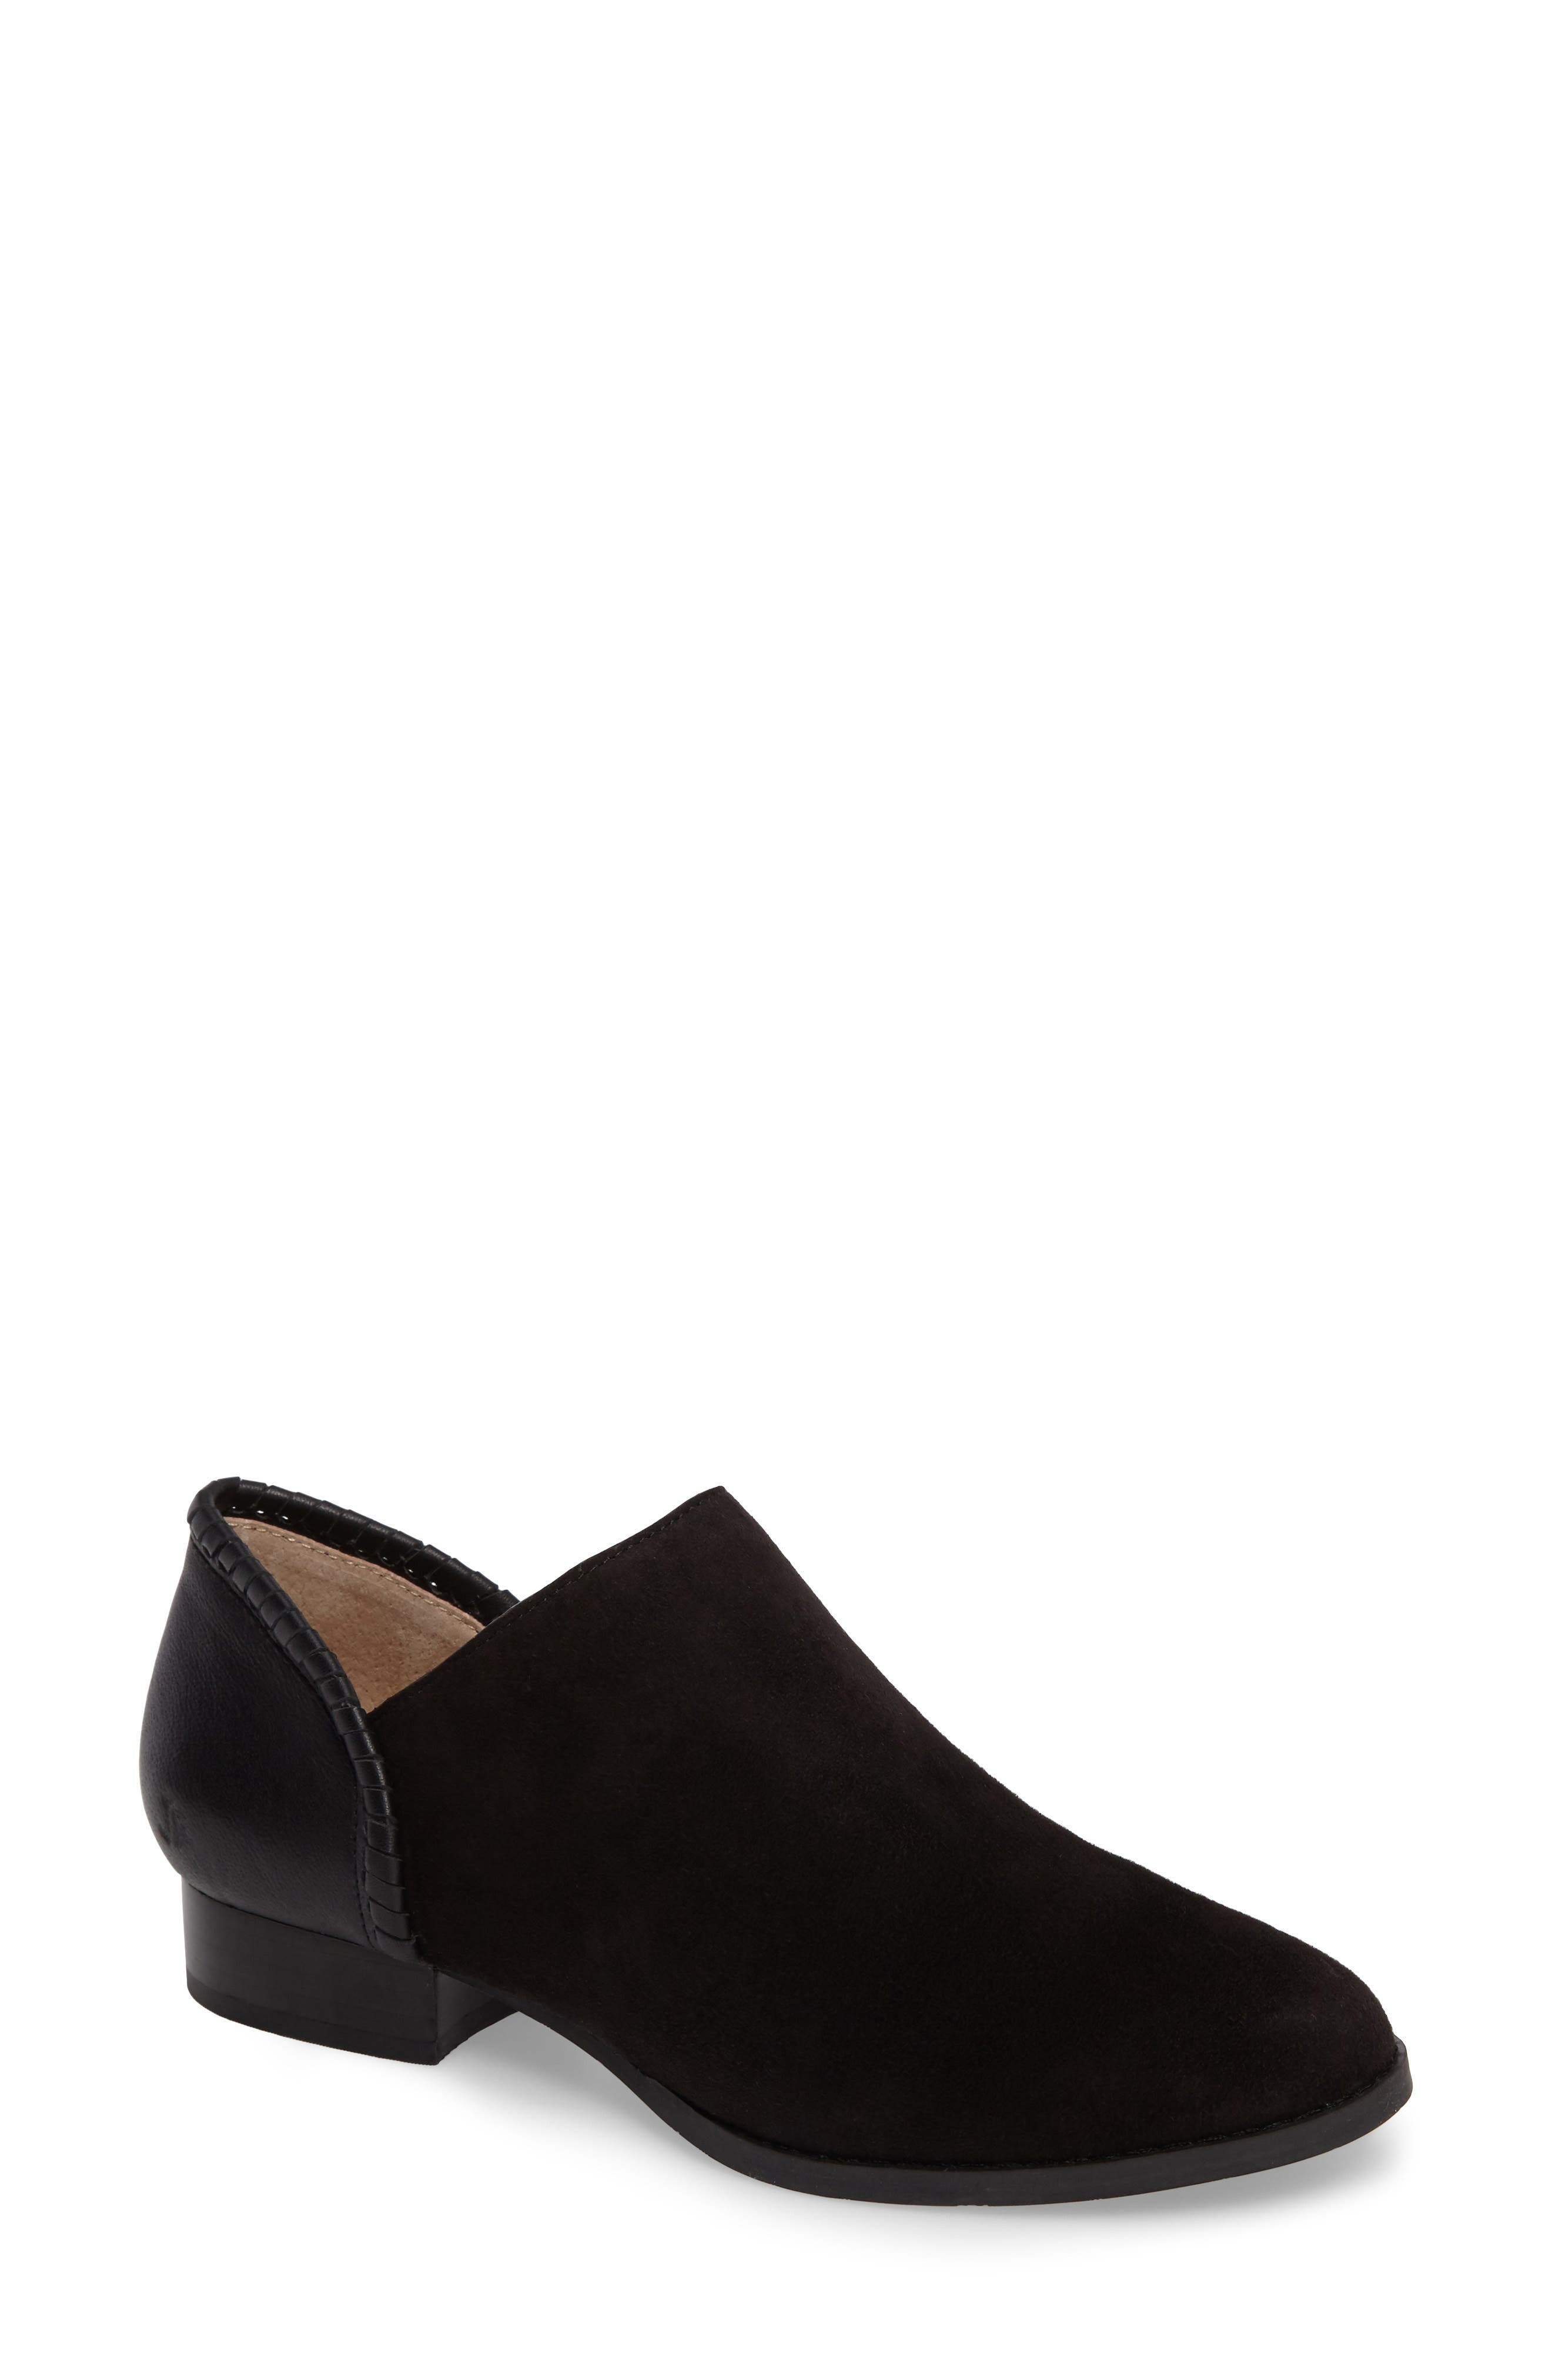 Avery Low Bootie,                         Main,                         color, 001